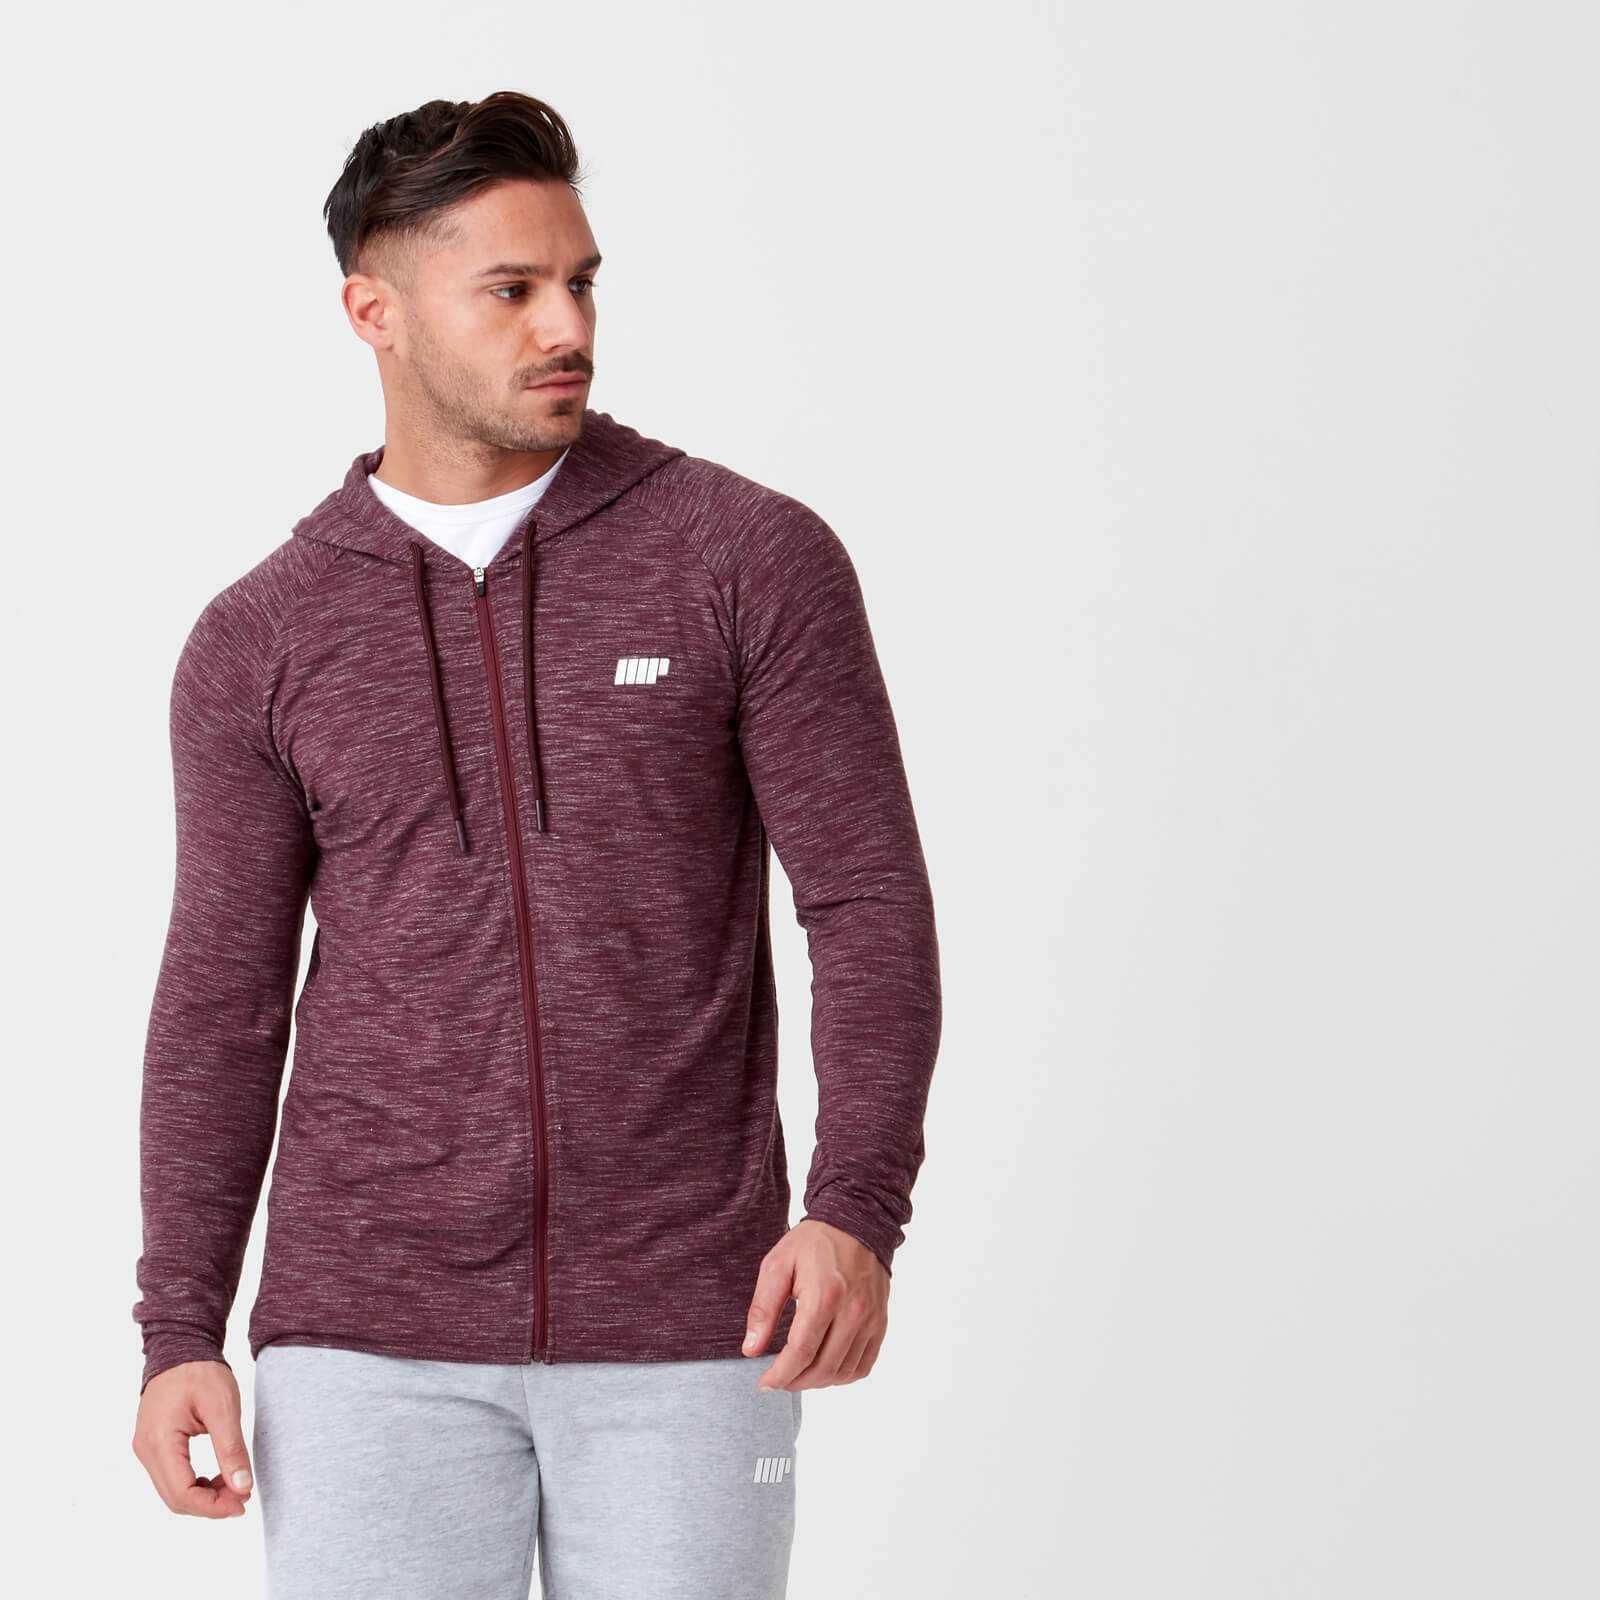 Myprotein Performance Zip Top - Burgundy Marl - XS